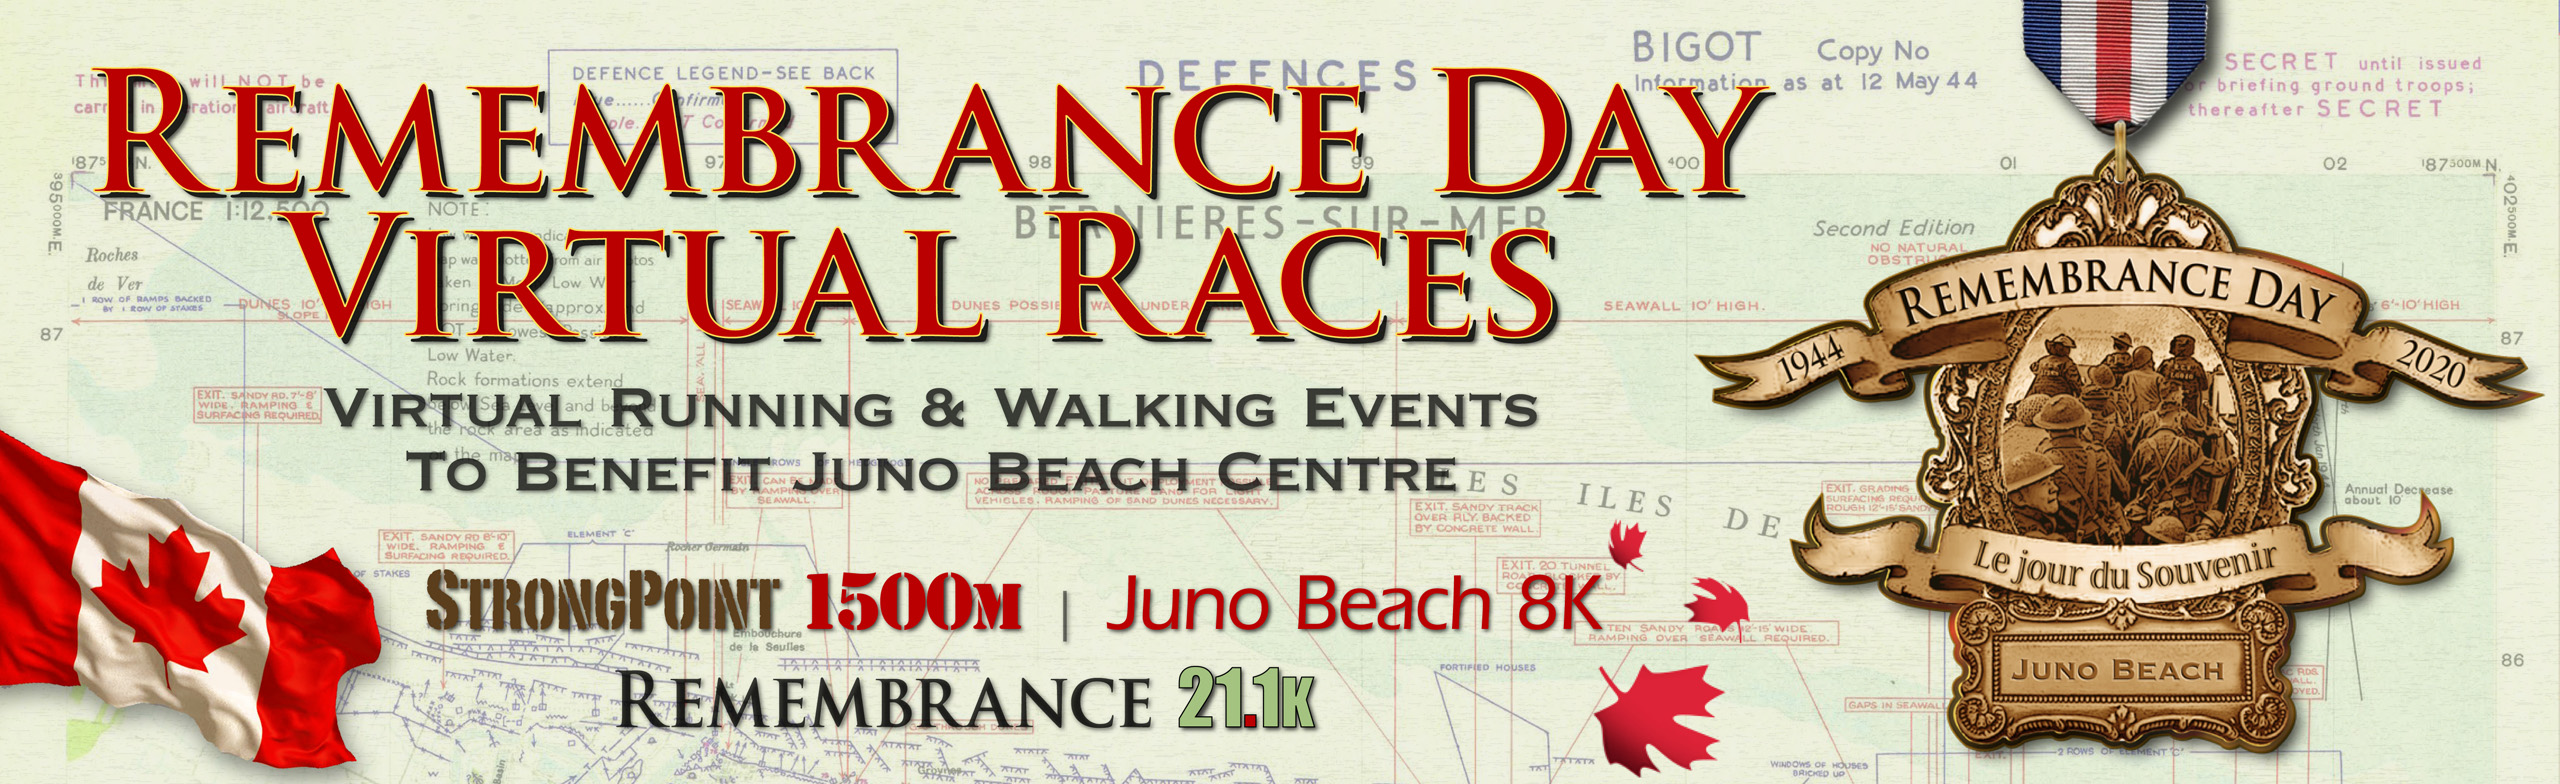 Remembrance Day Races2560x784banner 96